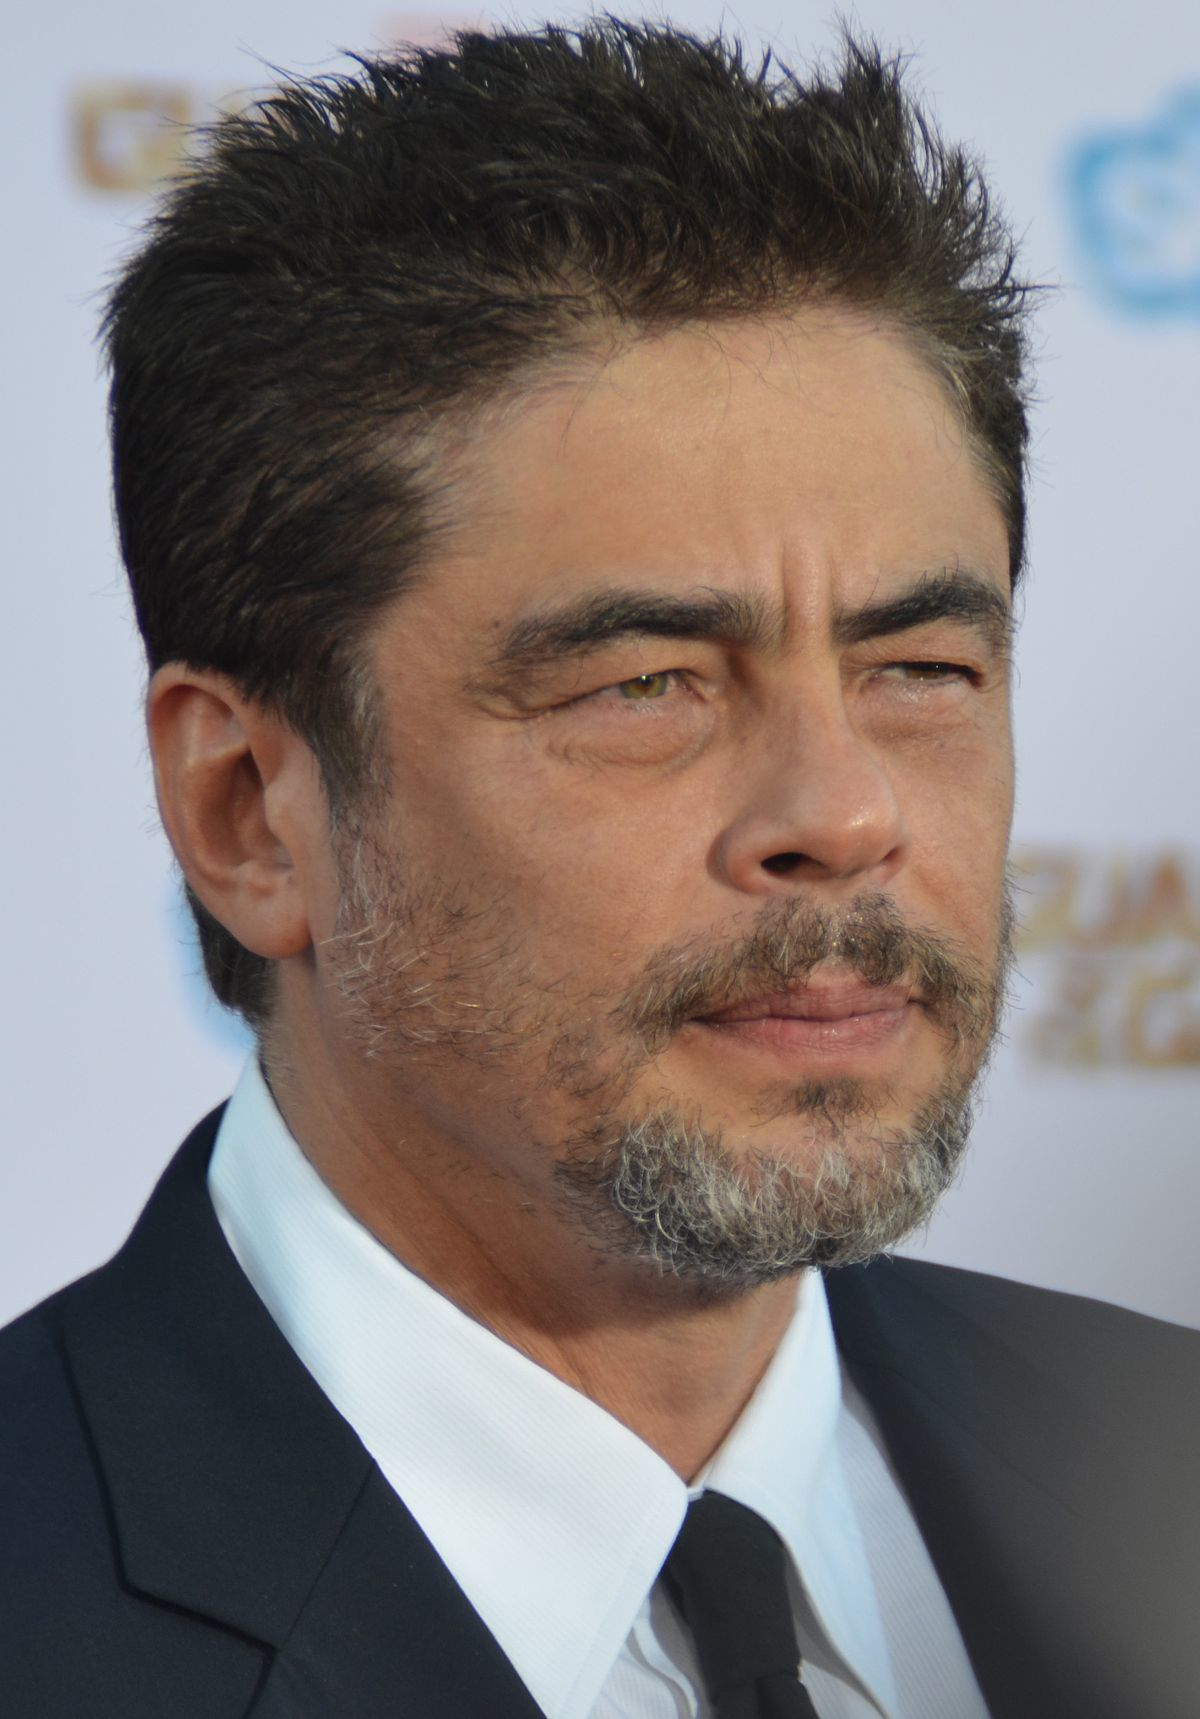 1200px-Benicio_Del_Toro_-_Guardians_of_the_Galaxy_premiere_-_July_2014_(cropped).jpg